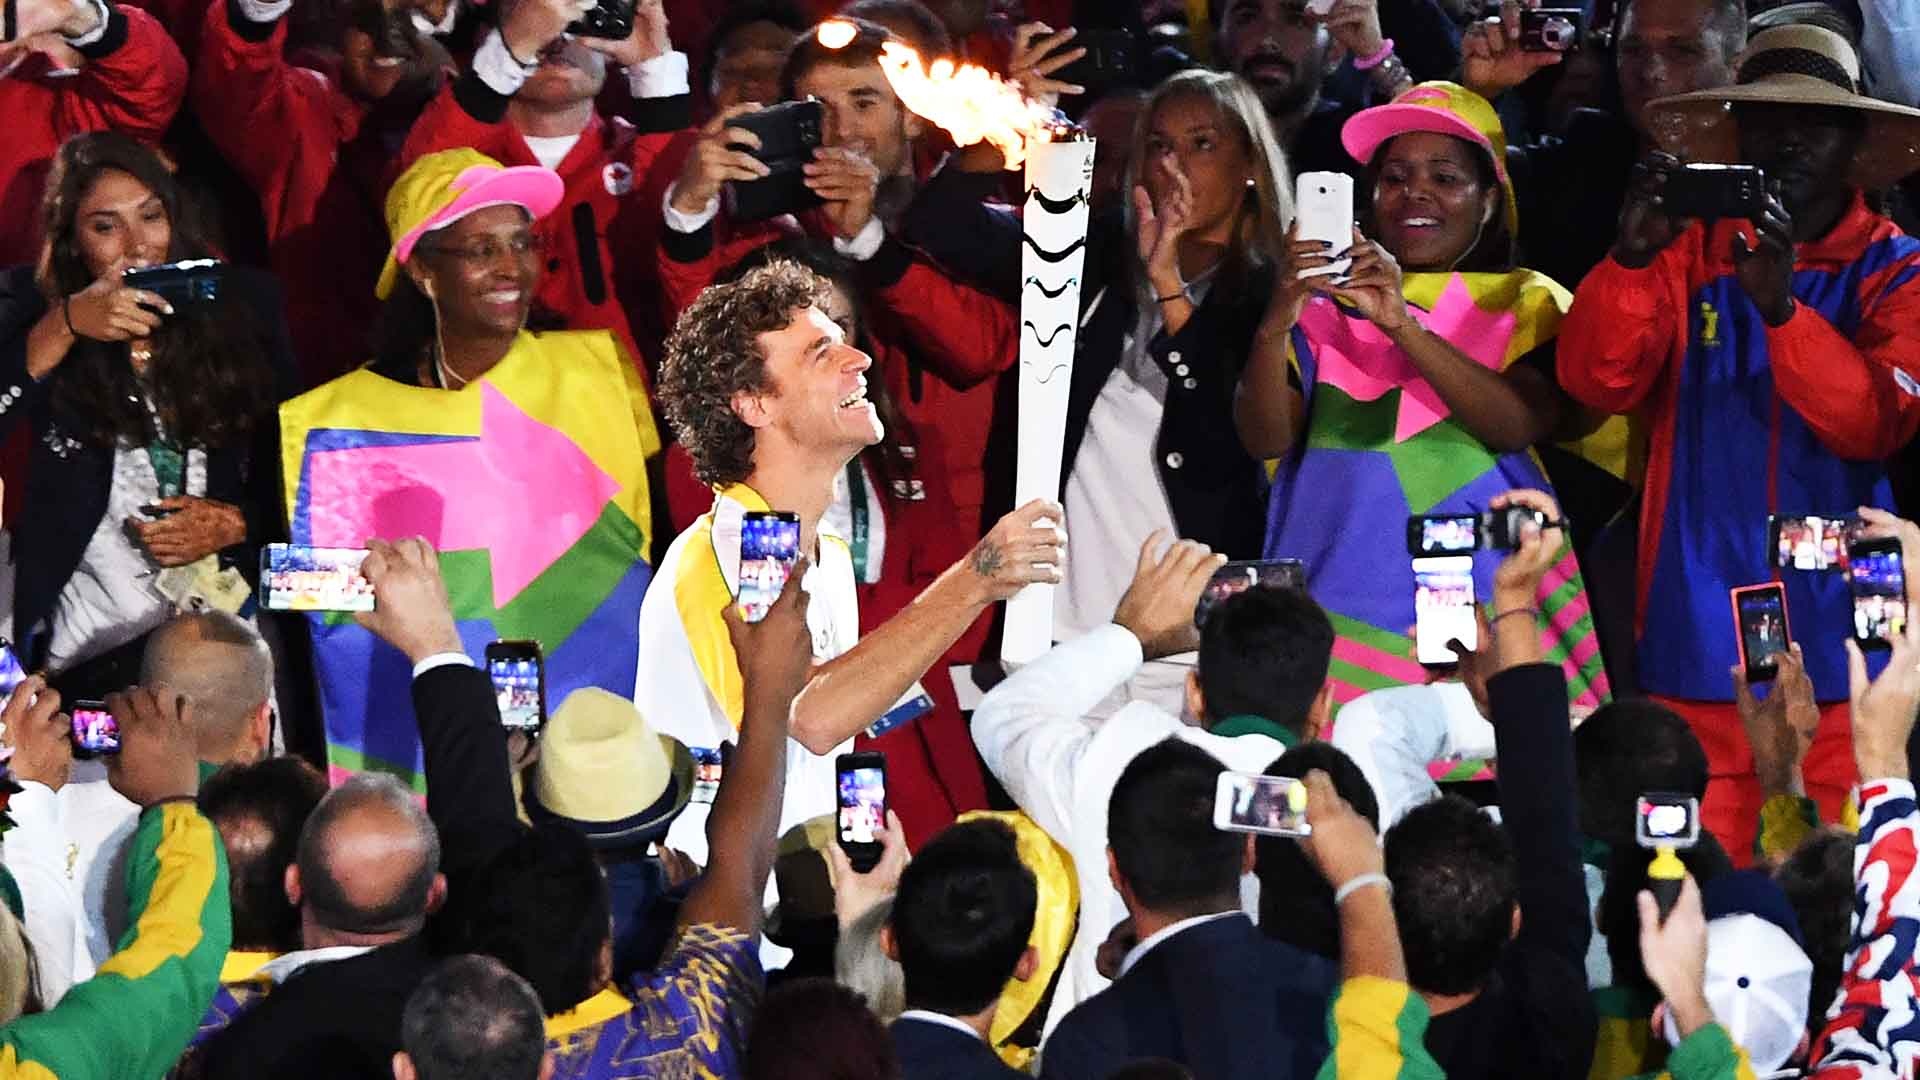 <a href='/en/players/gustavo-kuerten/k293/overview'>Gustavo Kuerten</a> carries the Olympic flame into the Maracana Stadium at the 2016 Olympic Games in Rio de Janeiro.